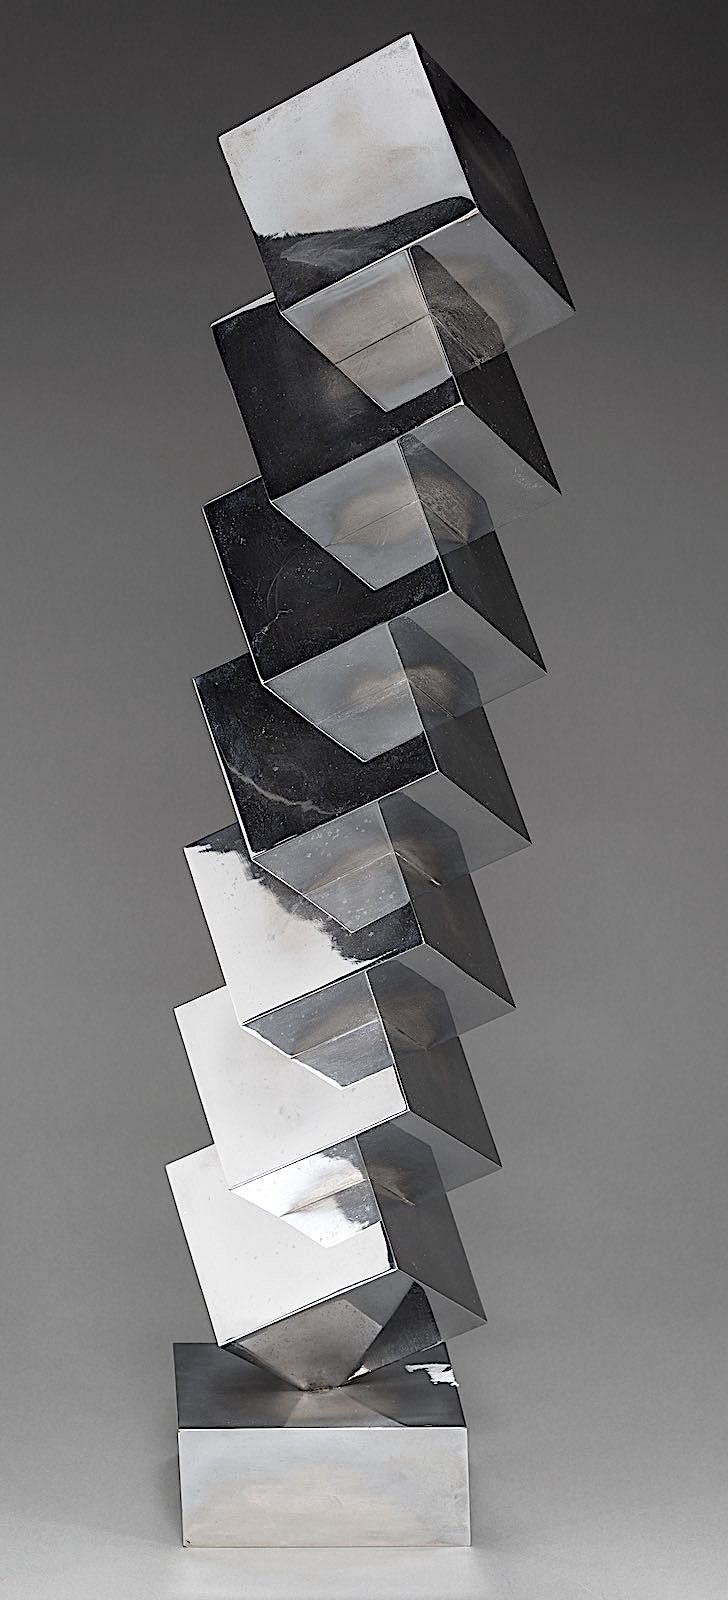 a Peter Nichols metal sculpture of stacked cubes, a color photograph